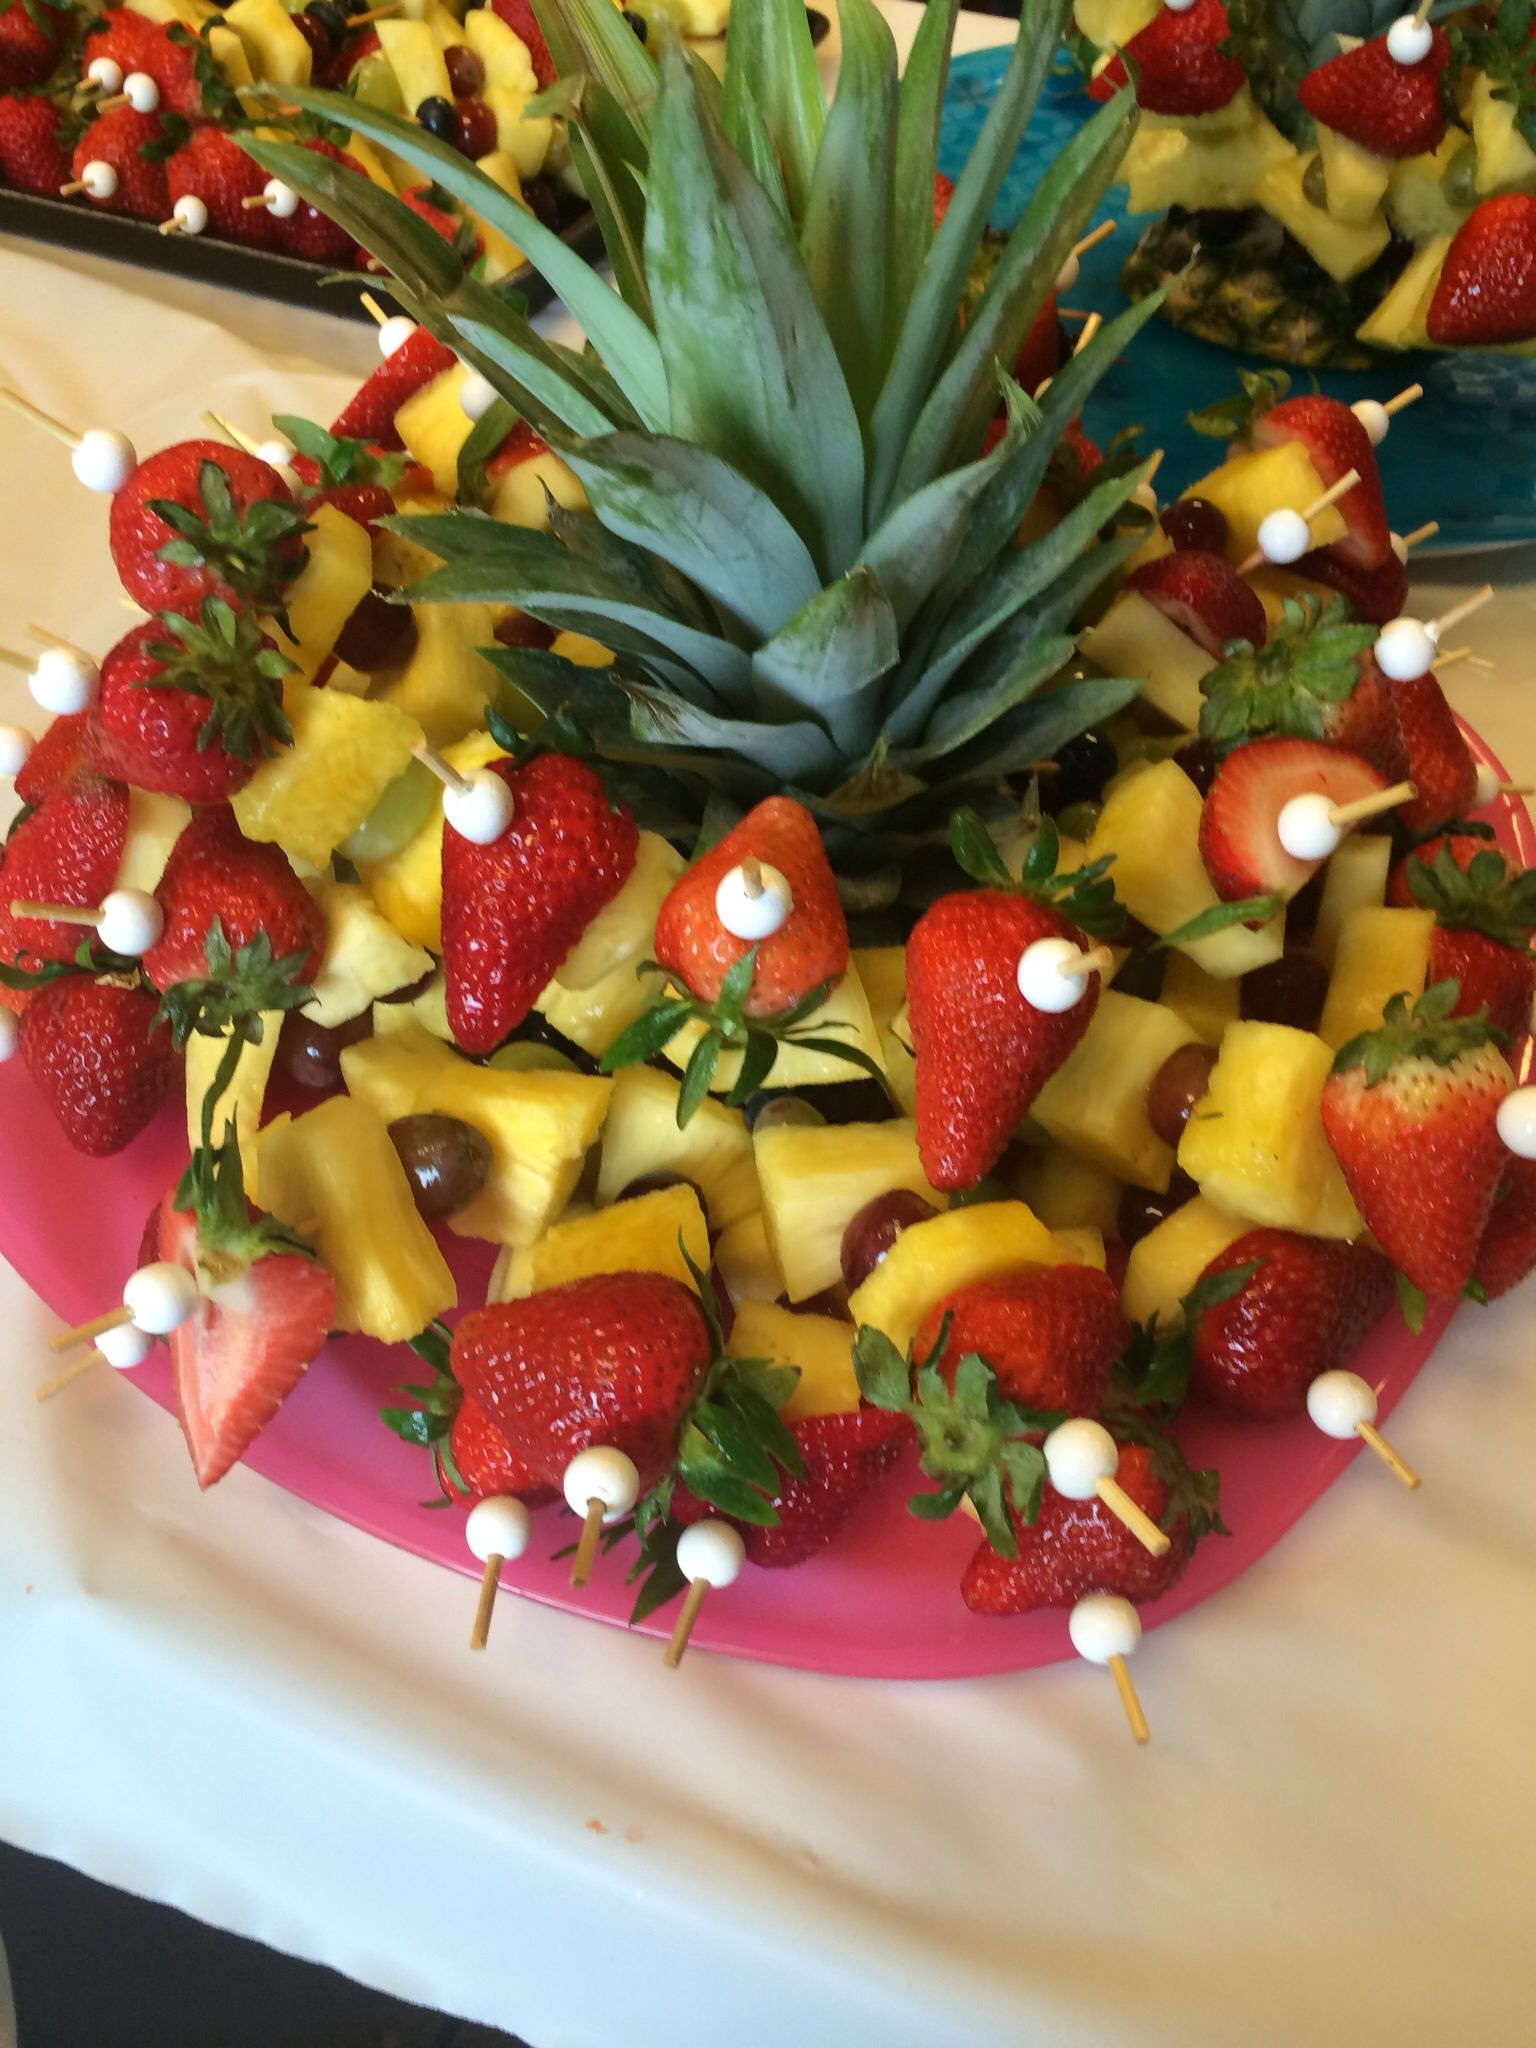 Mini Fruit Kabobs With Pineapple Top As Centerpiece Of Platter